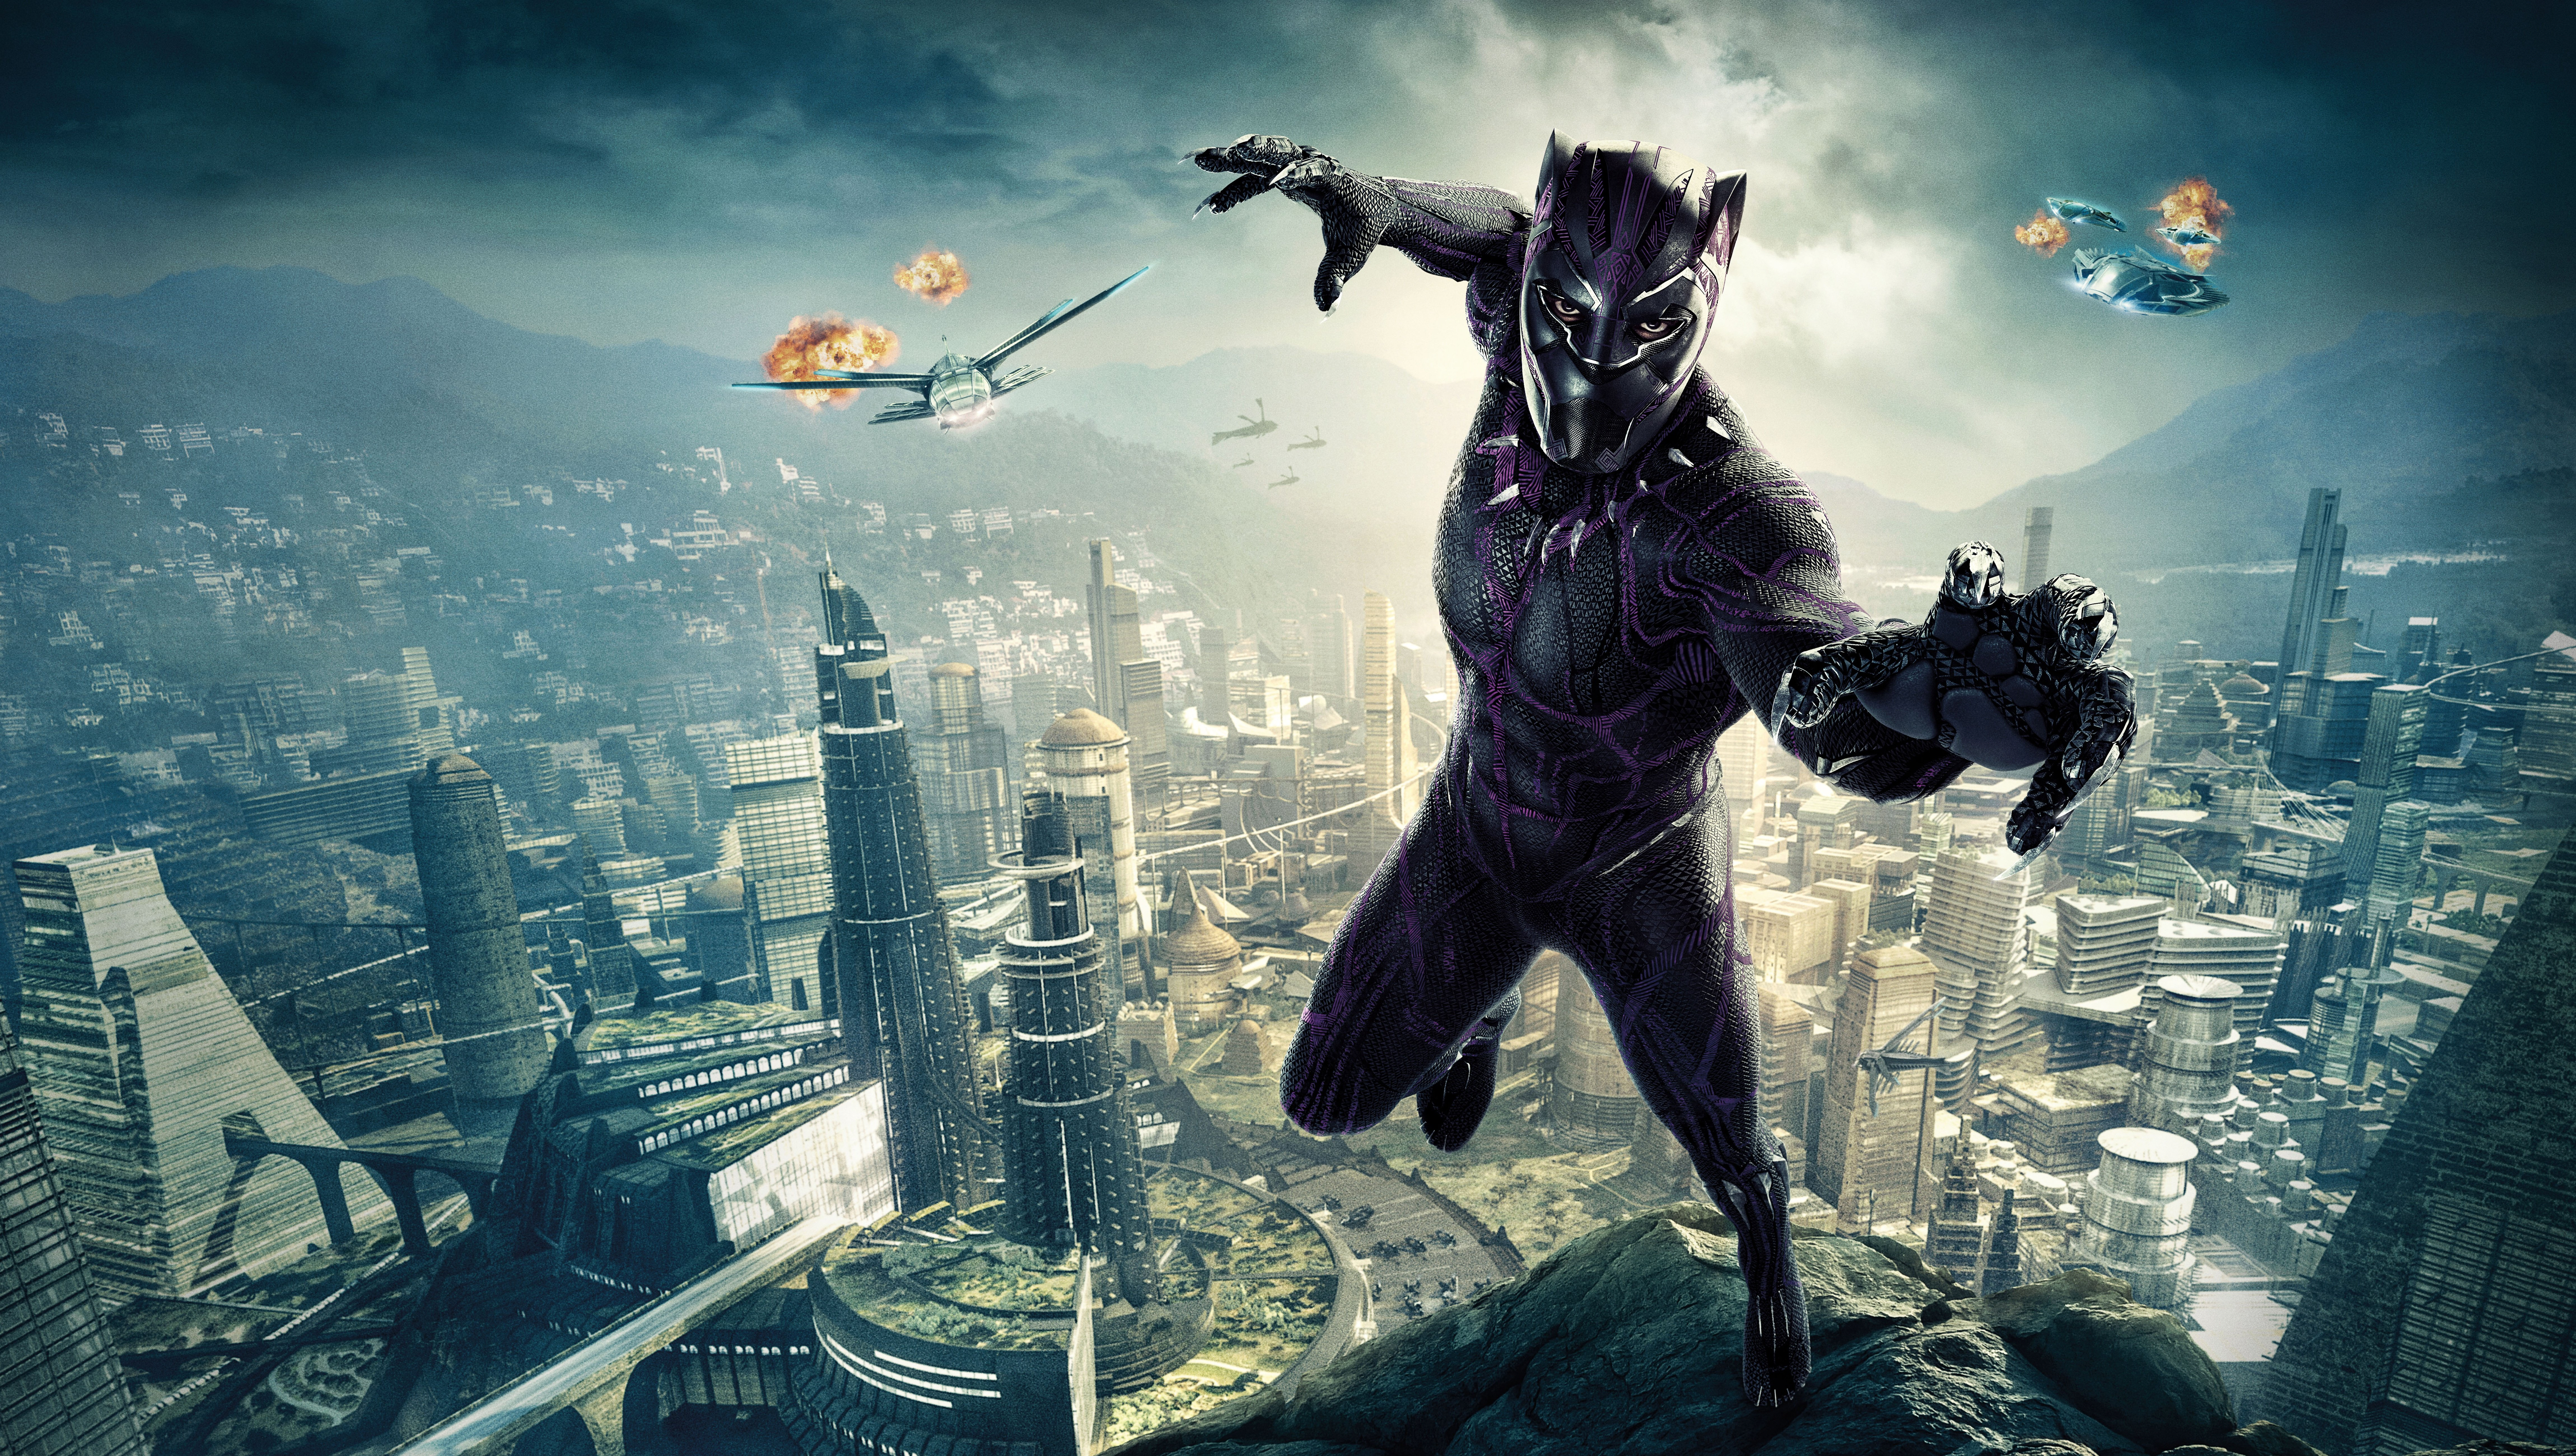 Panther Wallpapers 4k For Your Phone And Desktop Screen